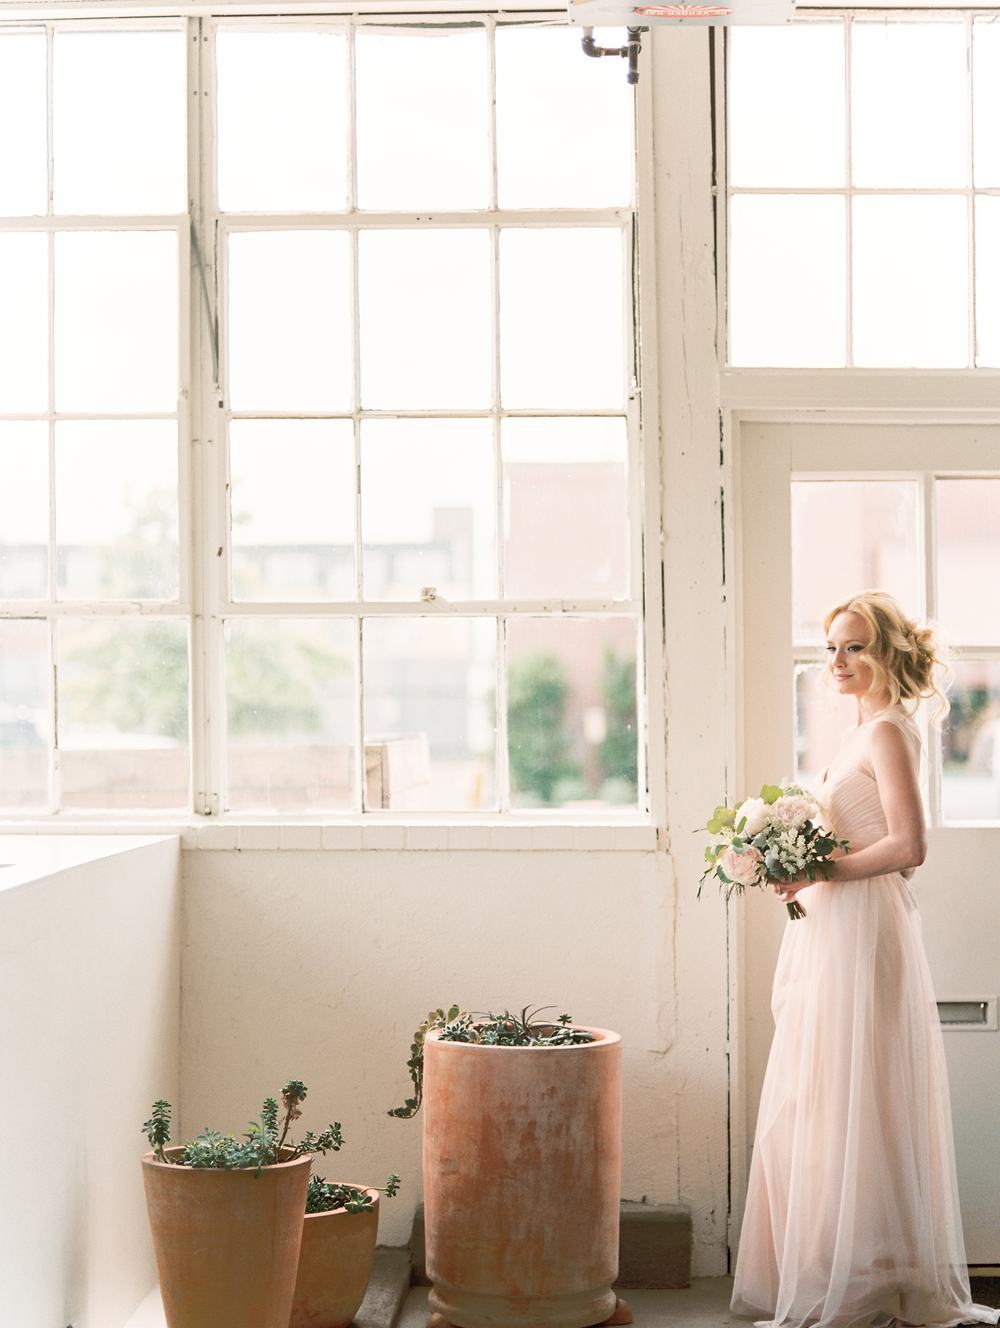 Blanc-Denver-wedding-inspiration-by-Lisa-O'Dwyer-Denver-fine-art-wedding-photographer-5.jpg